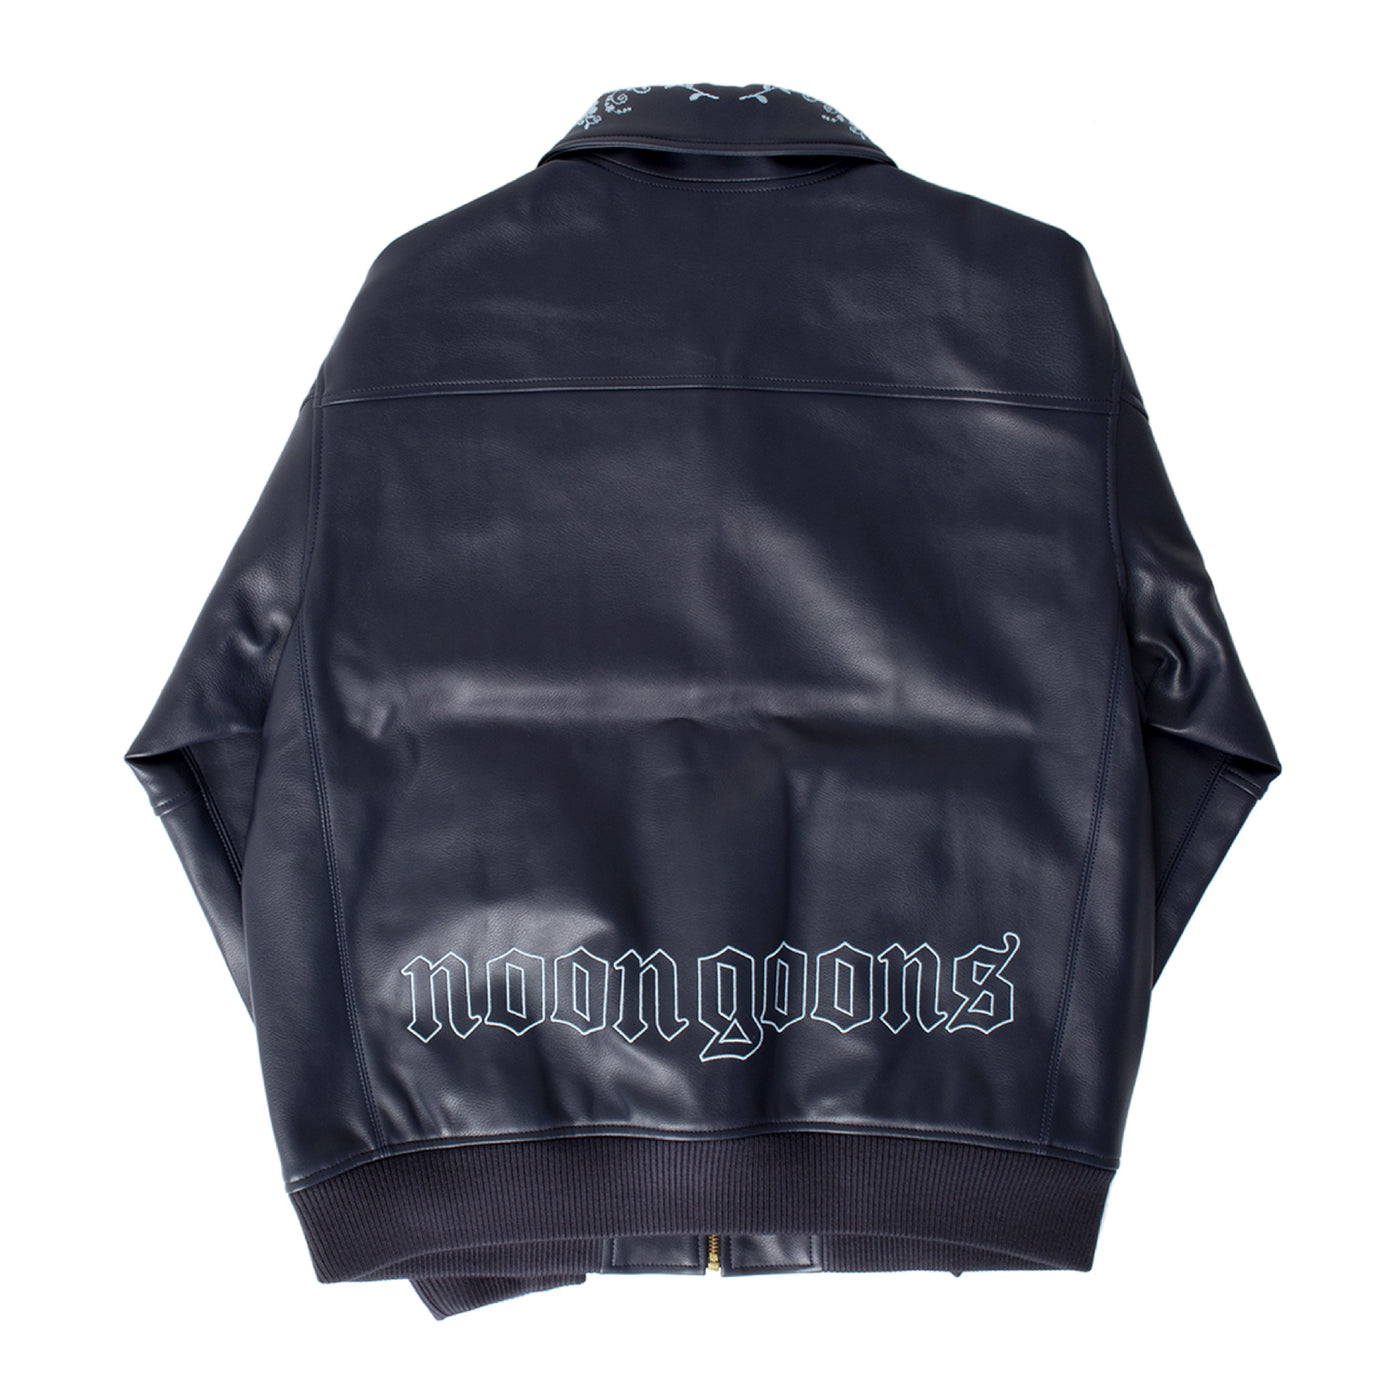 Load image into Gallery viewer, NOON GOONS FLORAL-EMBROIDERED JACKET NAVY